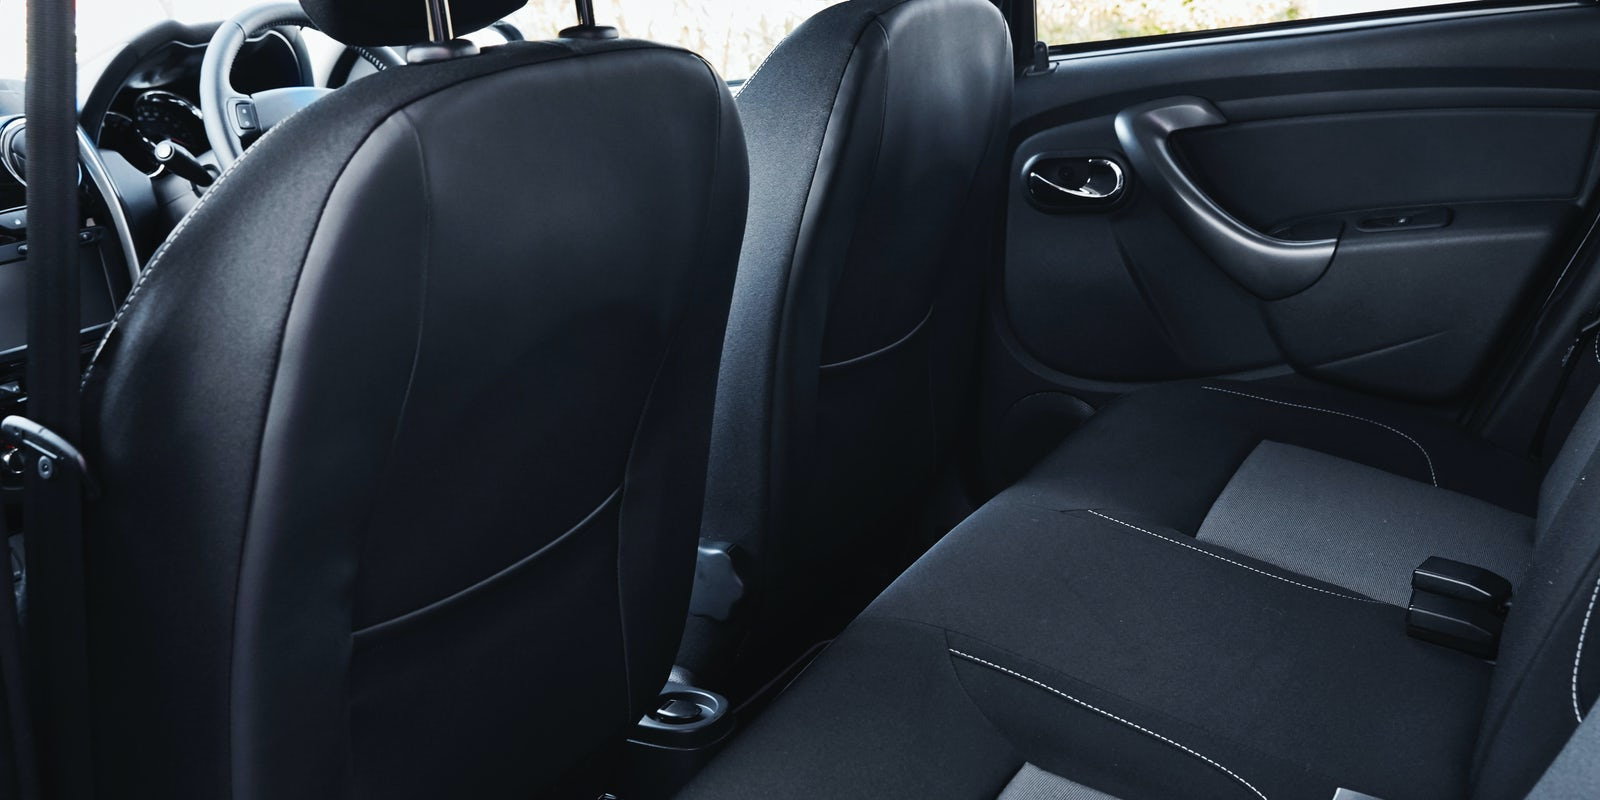 Dacia Duster interior and infotainment   carwow